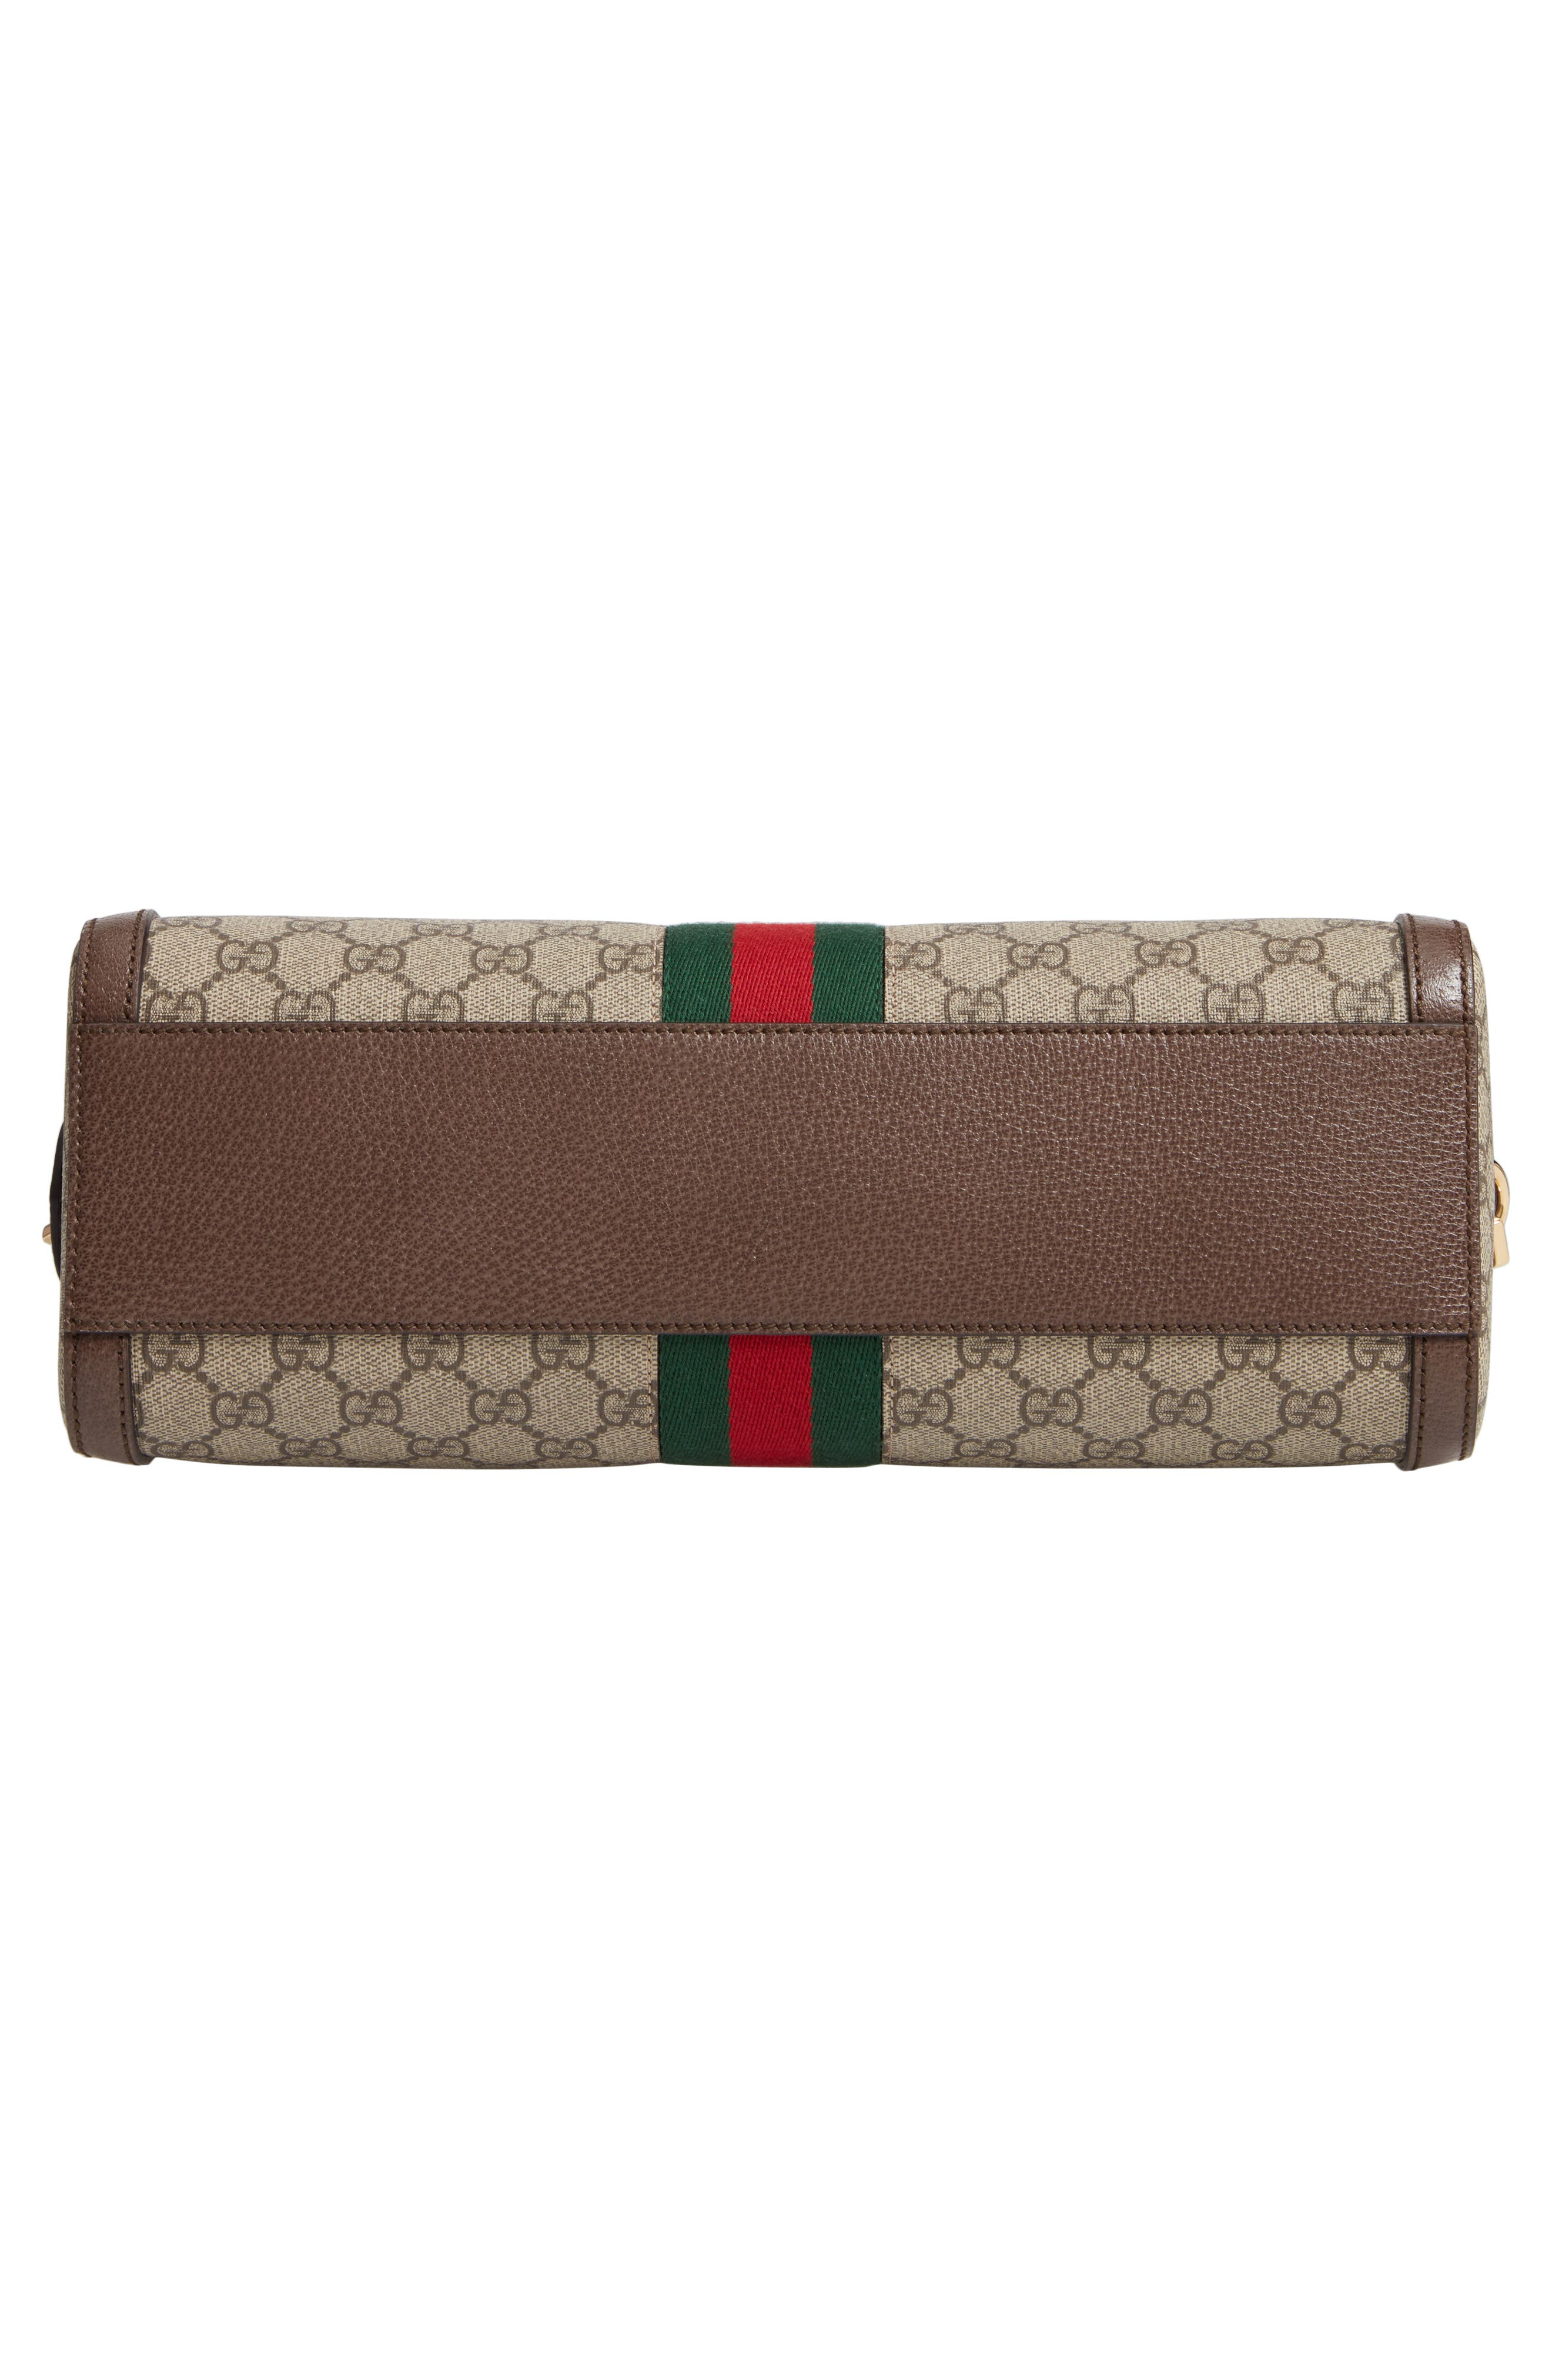 GUCCI, Ophidia GG Supreme Canvas Top Handle Bag, Alternate thumbnail 6, color, BEIGE EBONY/ ACERO/ VERT RED